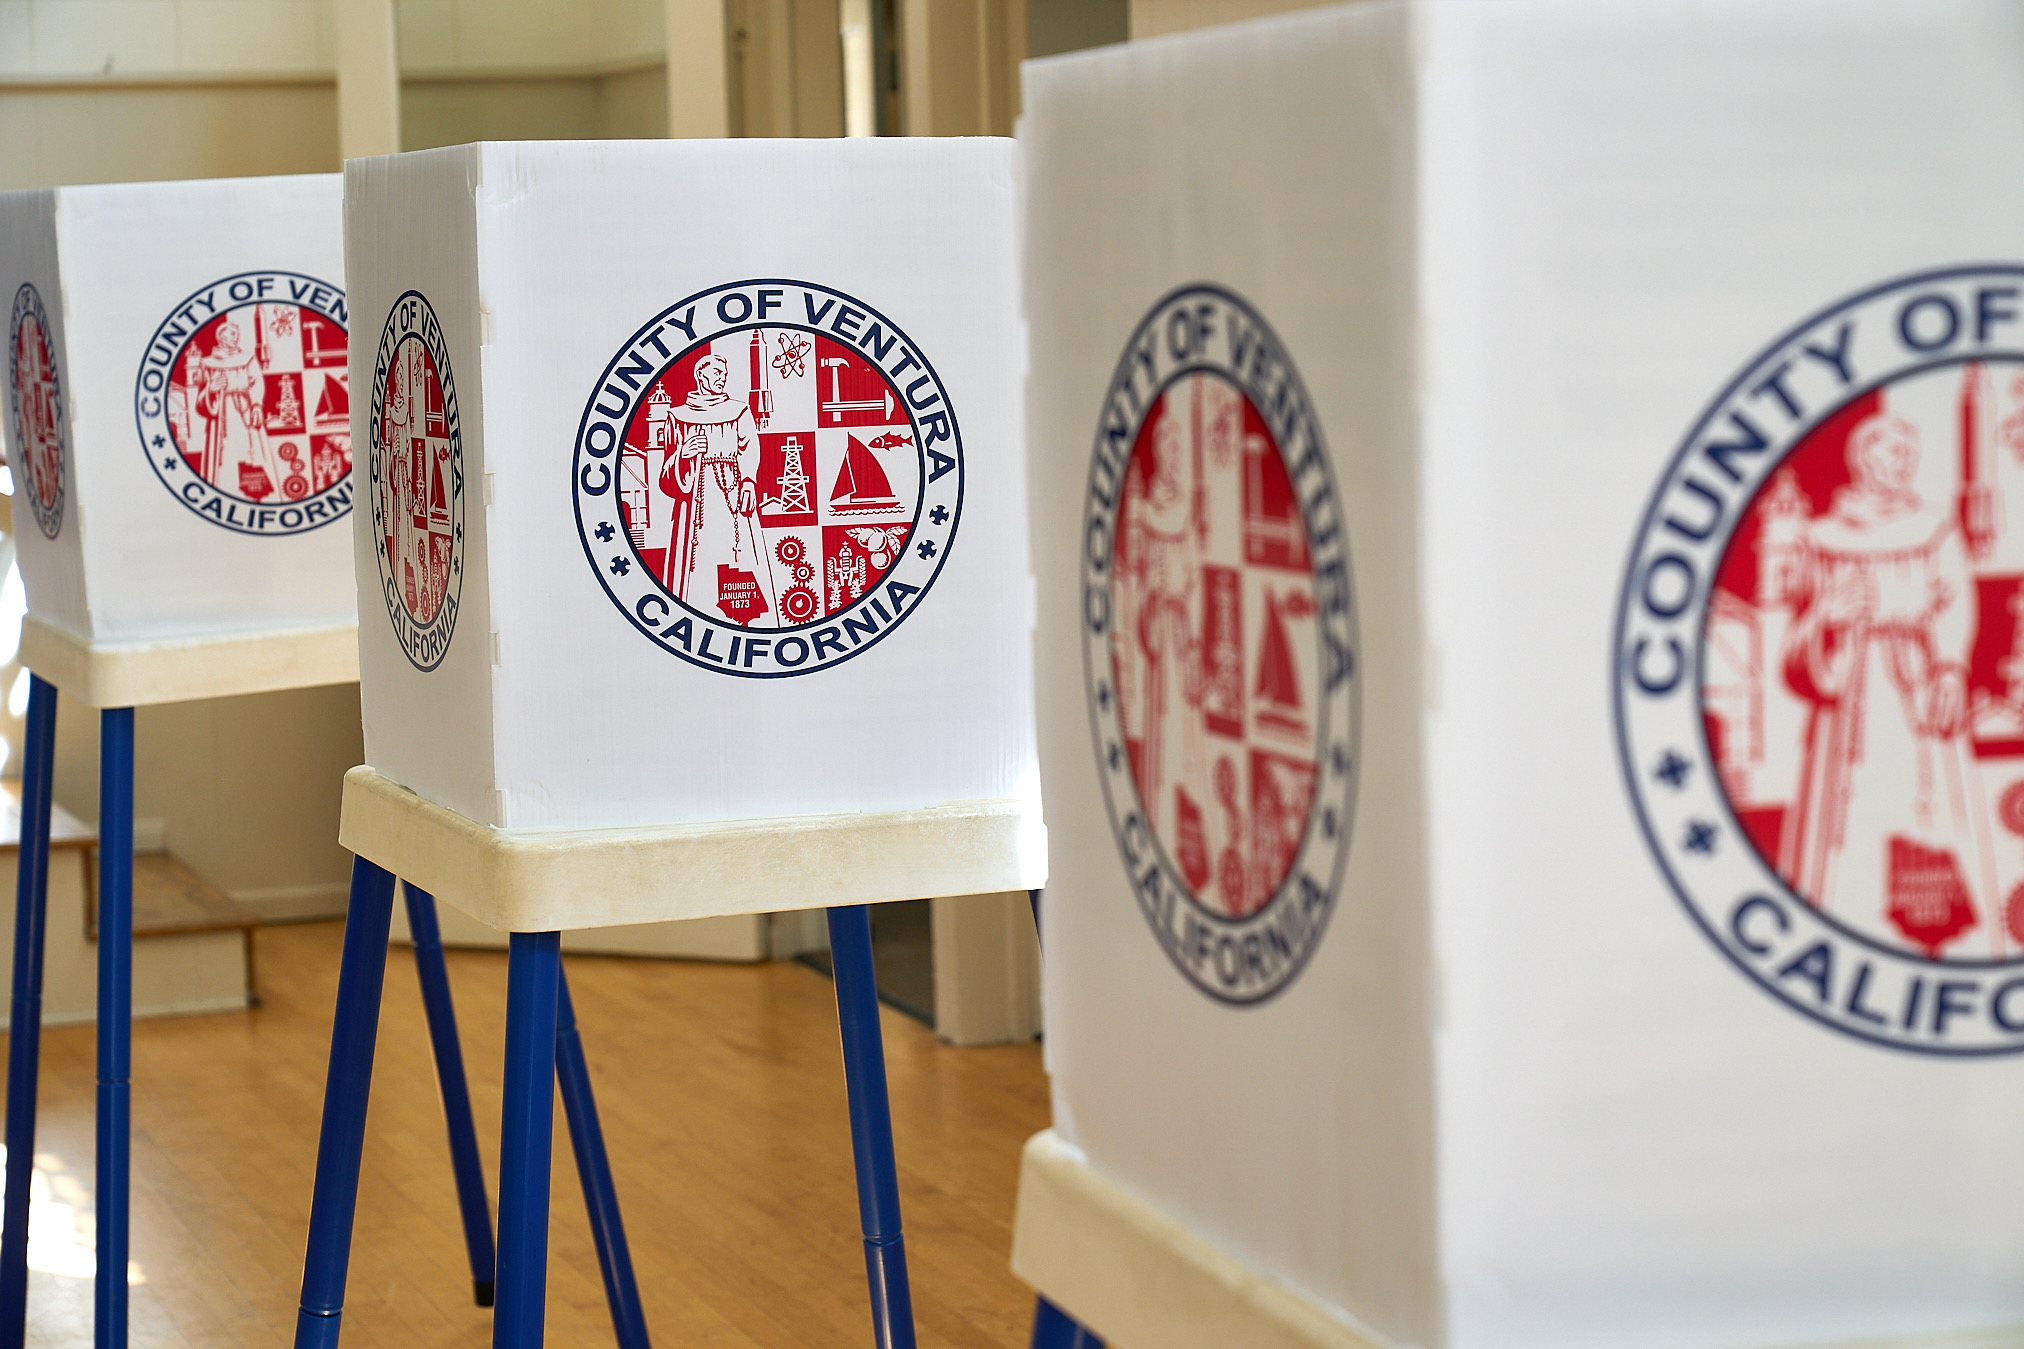 2020 California Presidential Primary Voting. democracy, election, election security, politics, voting, voting machines.